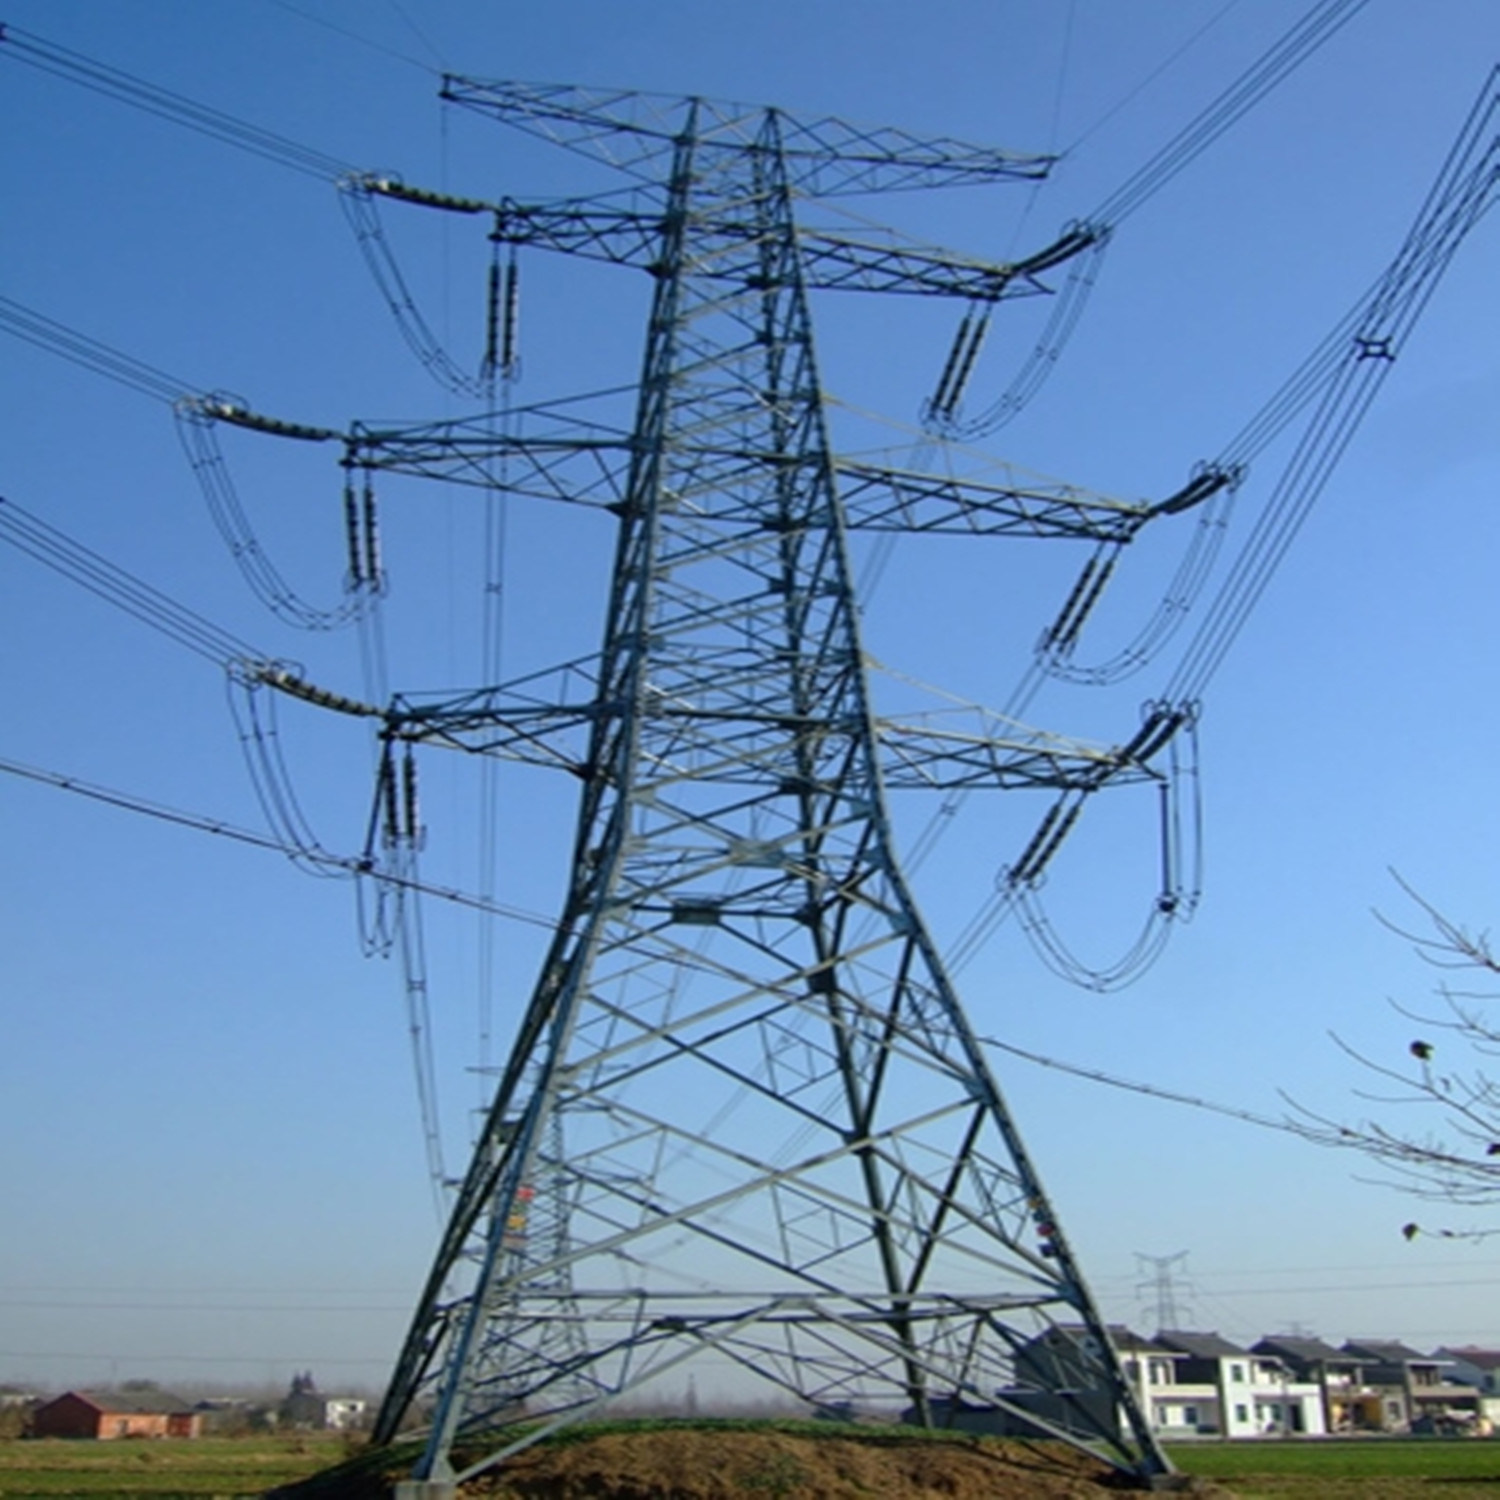 132kv Steel Towers, Transmission Tower for Overseas Powertransmission Project